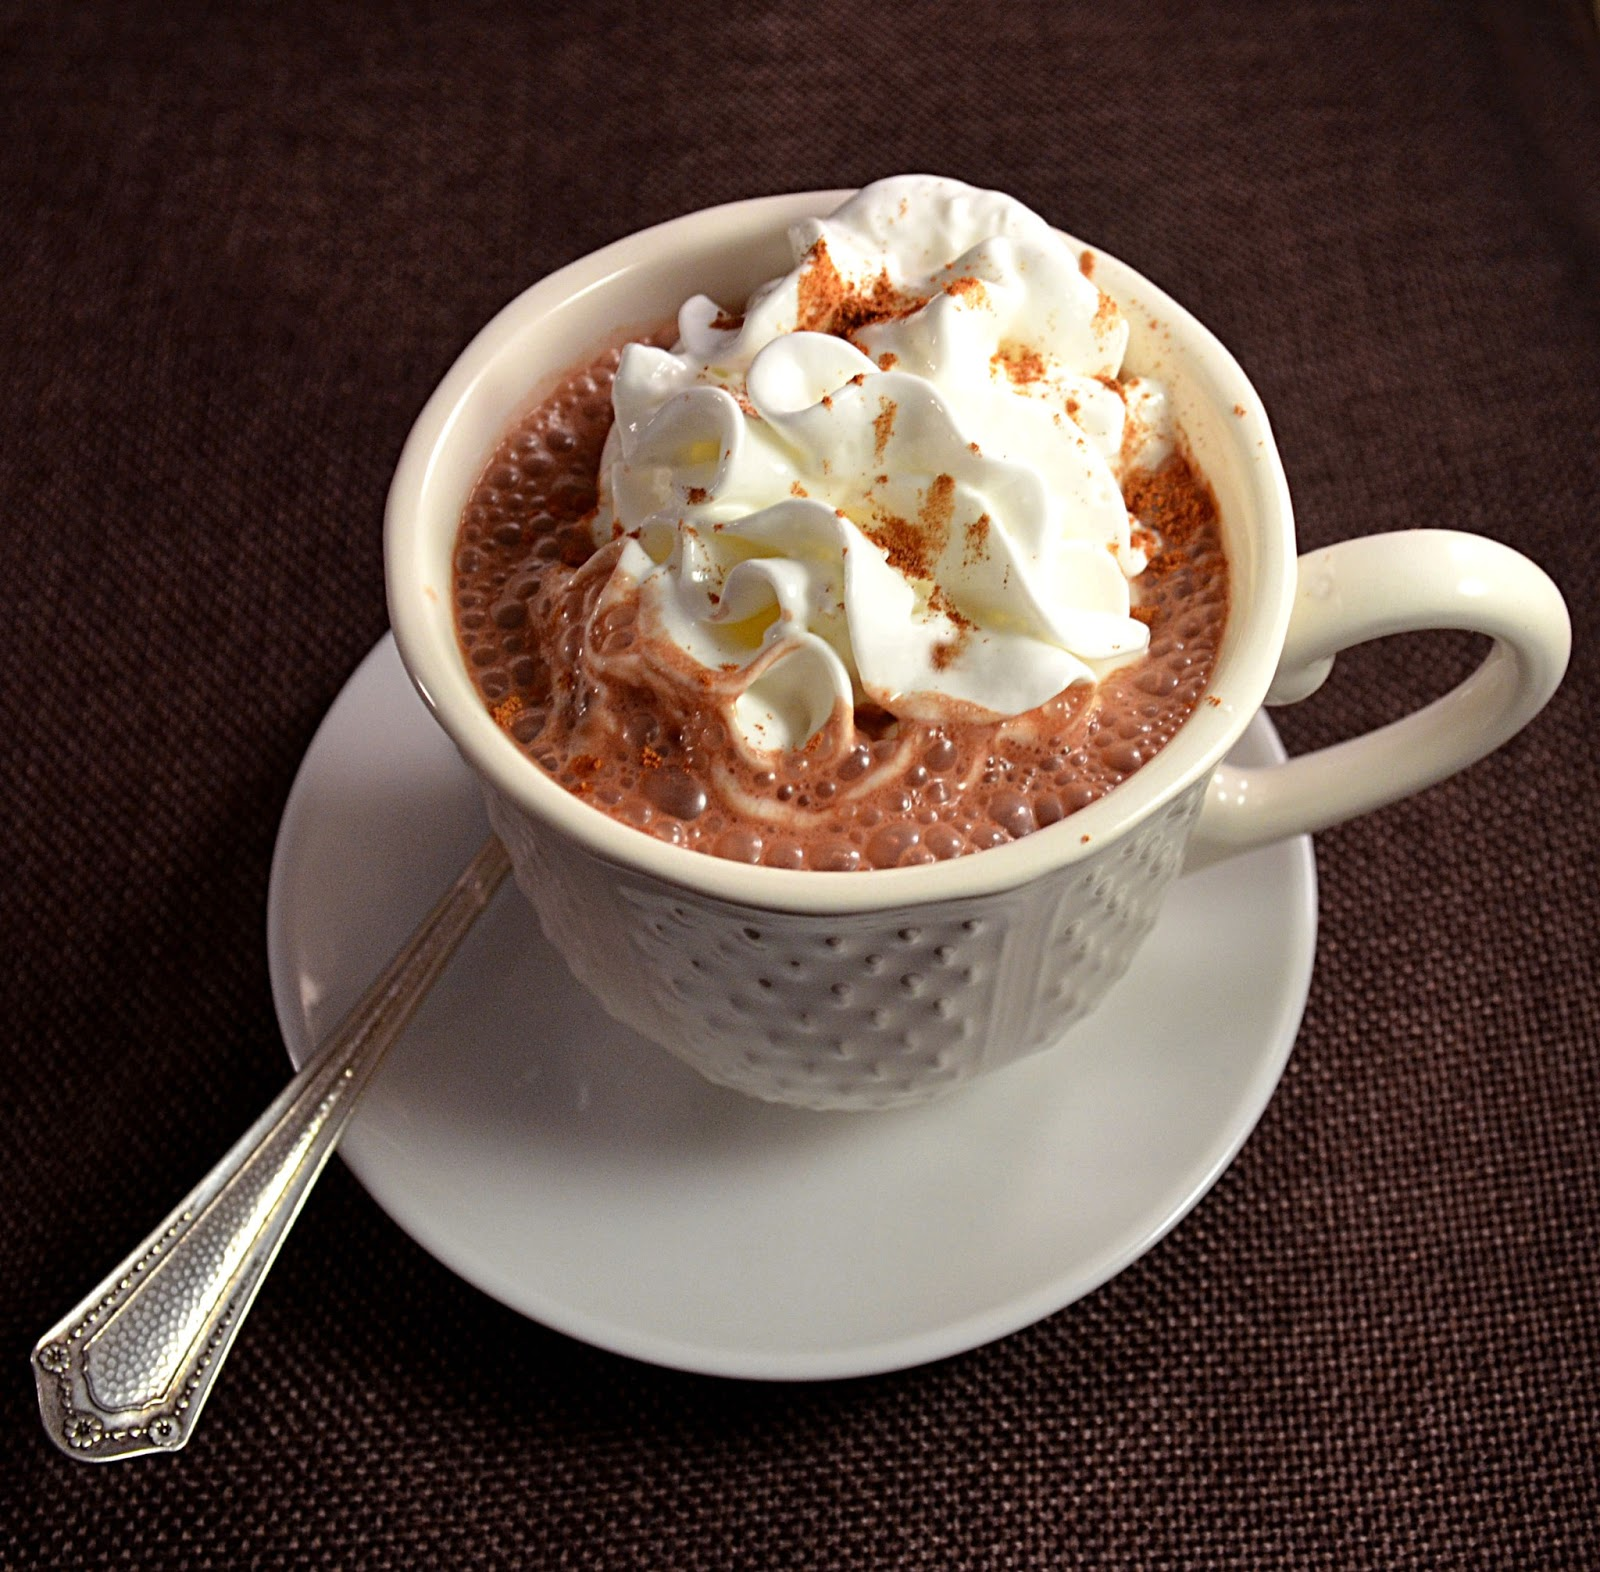 Sew French: Healthy Weekday Morning Hot Chocolate